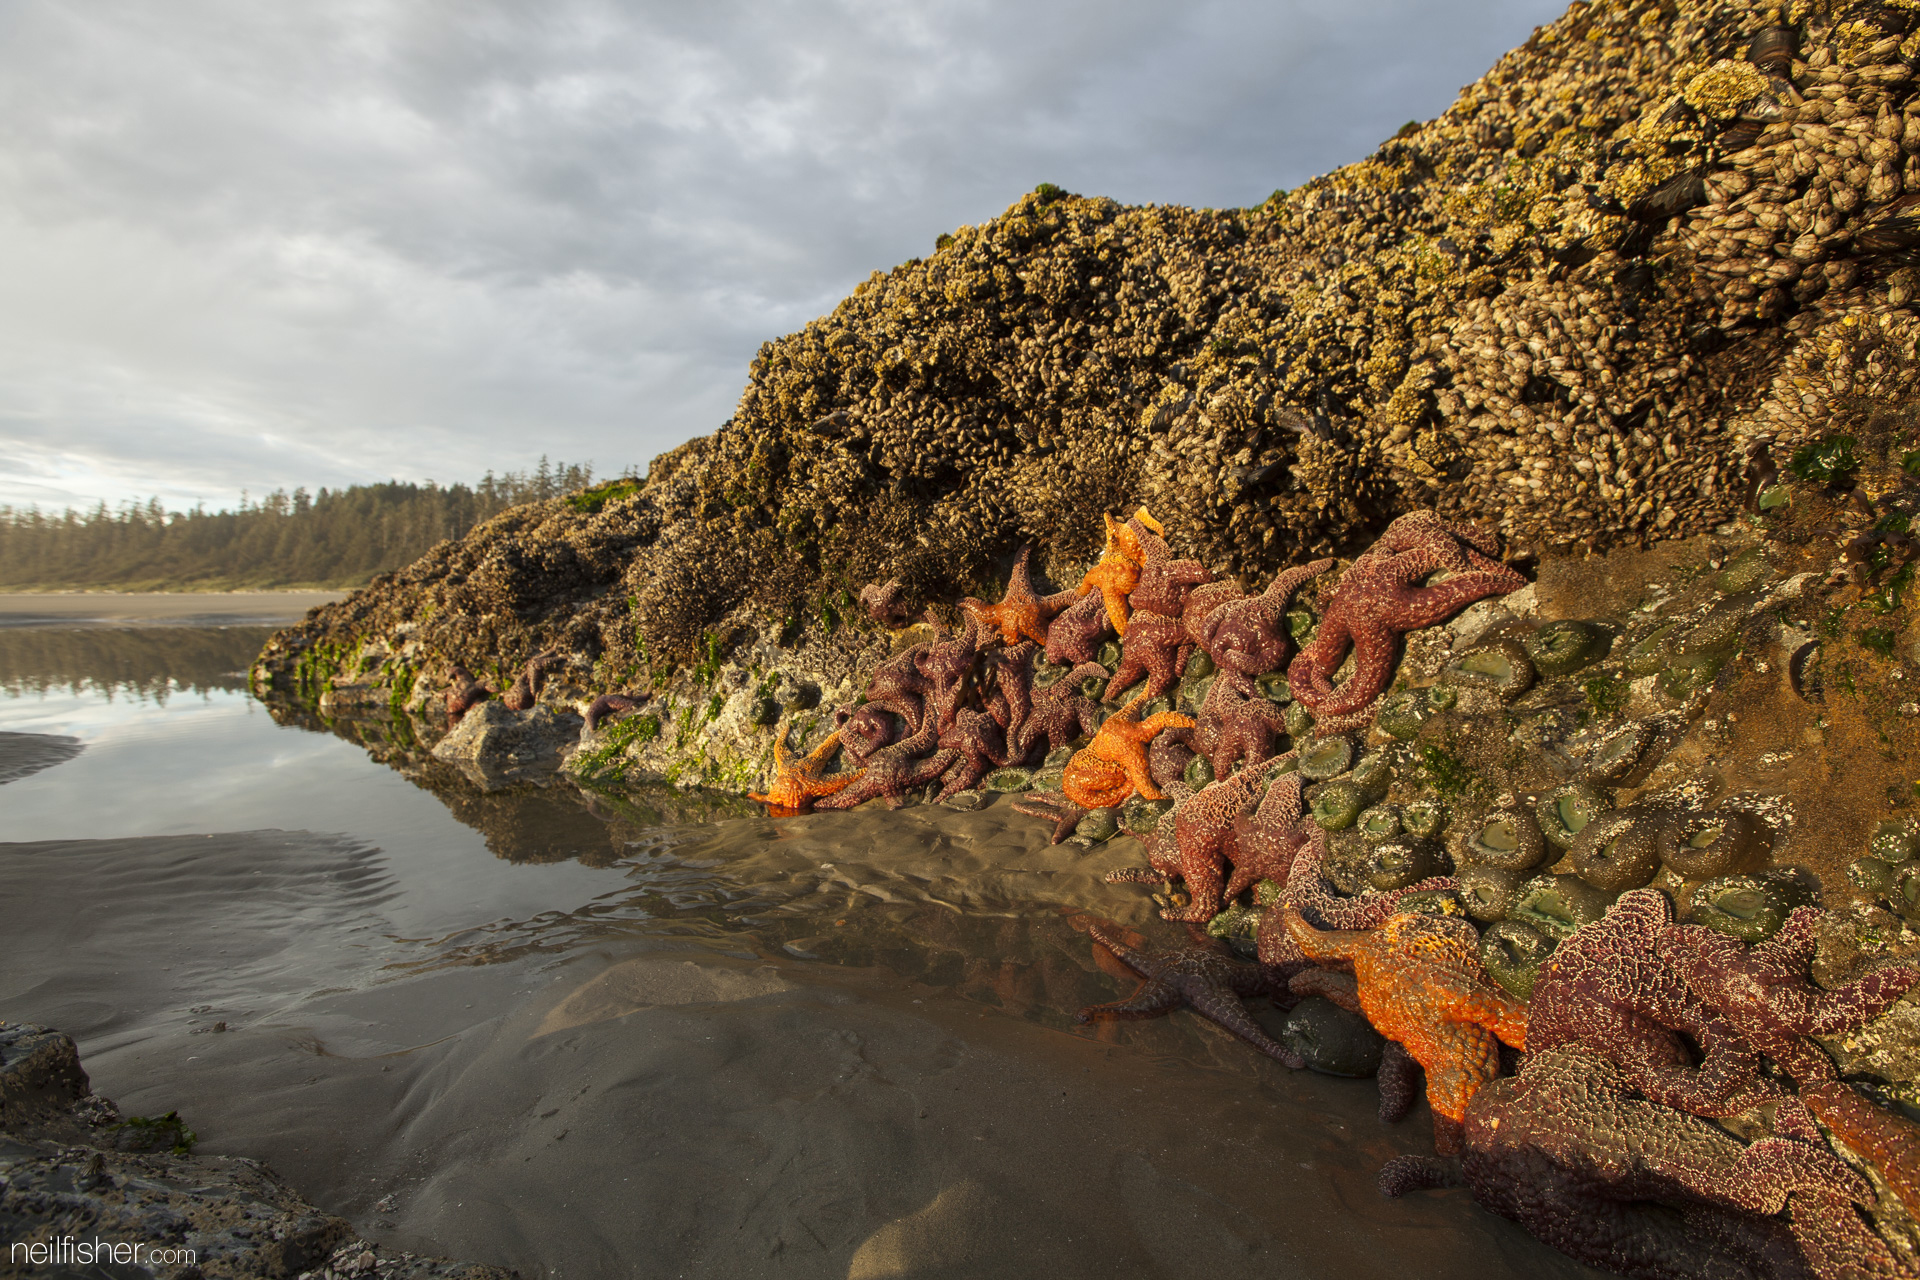 Sunset during low tide at Green Point in Pacific Rim National Park Reserve. Barnacles and mussels battle for turf, while ochre stars prey upon those with a loose grip. The tide begins to crawl towards the forest and regain its hold on the beach. Green sea anemones wait patiently for the returning nutrient rich Pacific Ocean. The last of the sun's rays reach across the wet sand drenching the shore in a warm orange hue.  EXIF 1/15sec f/8.0 ISO 100 16mm September 5th 2013 19:15 Pacific Rim National Park Reserve, BC.